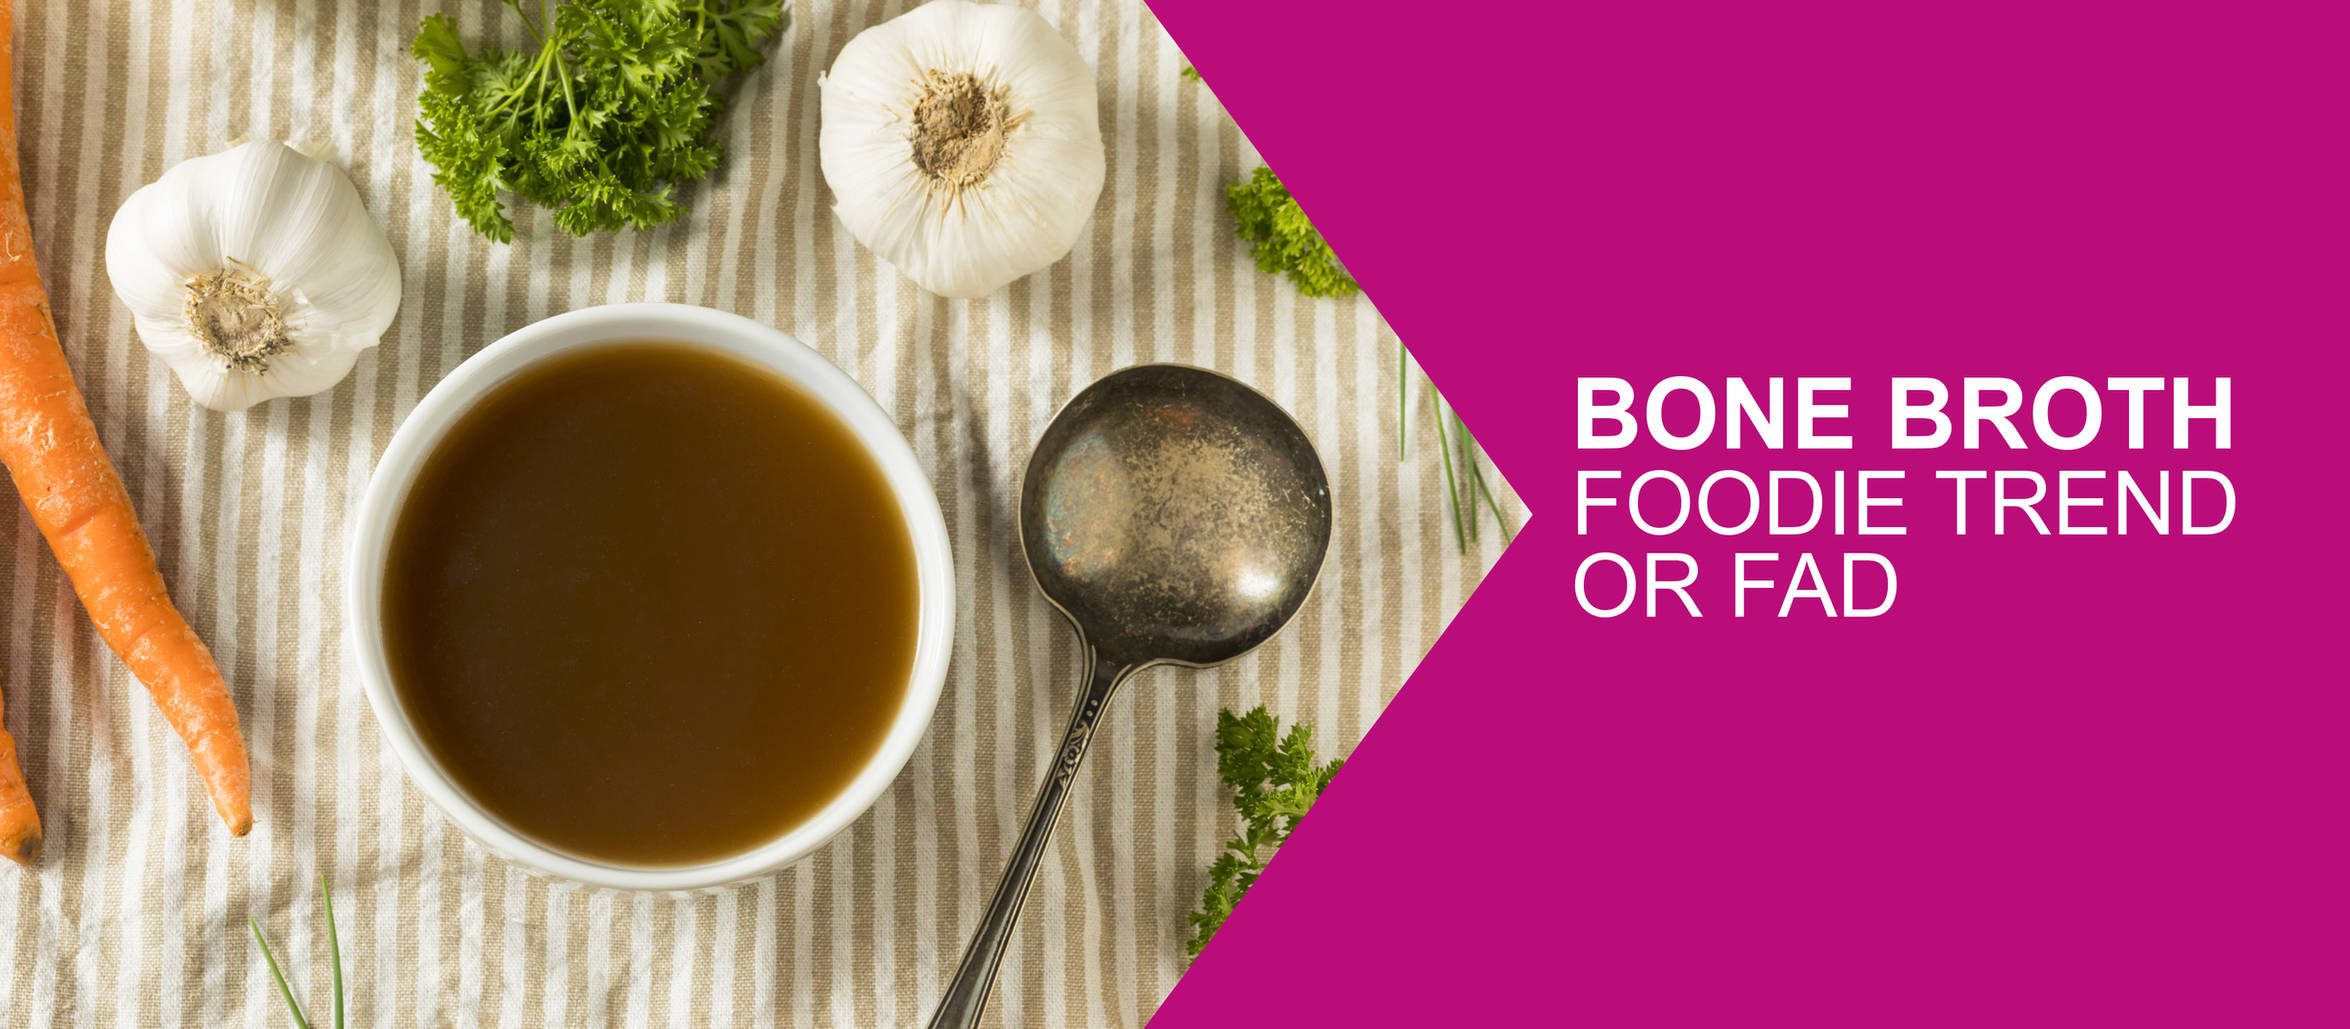 "Bowl of broth surrounding by garlic and carrots, overlayed with the title "" Bone broth foodie trend or fad"